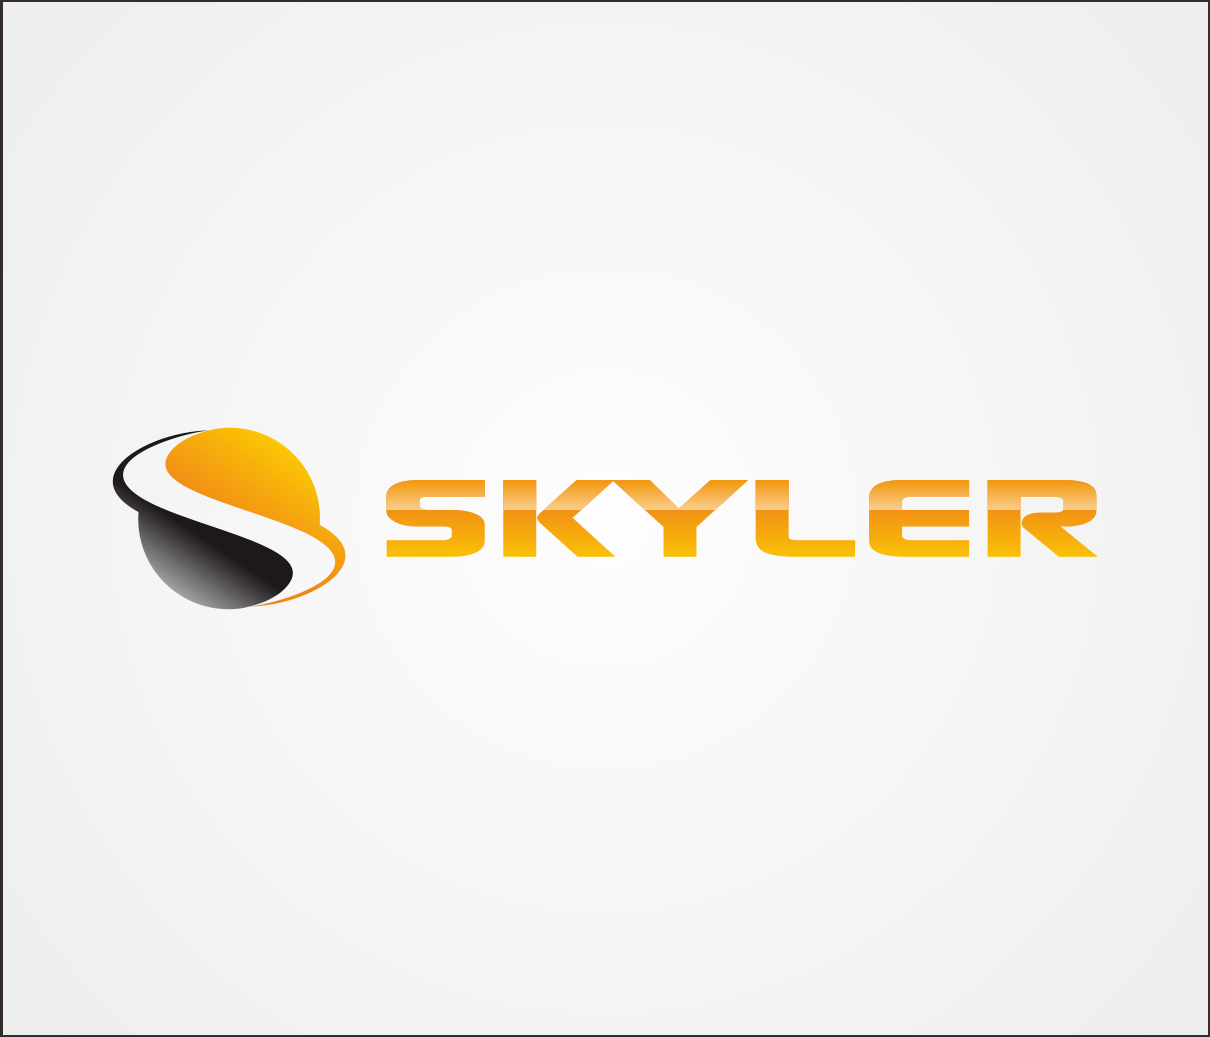 Logo Design by Armada Jamaluddin - Entry No. 171 in the Logo Design Contest Artistic Logo Design for Skyler.Asia.